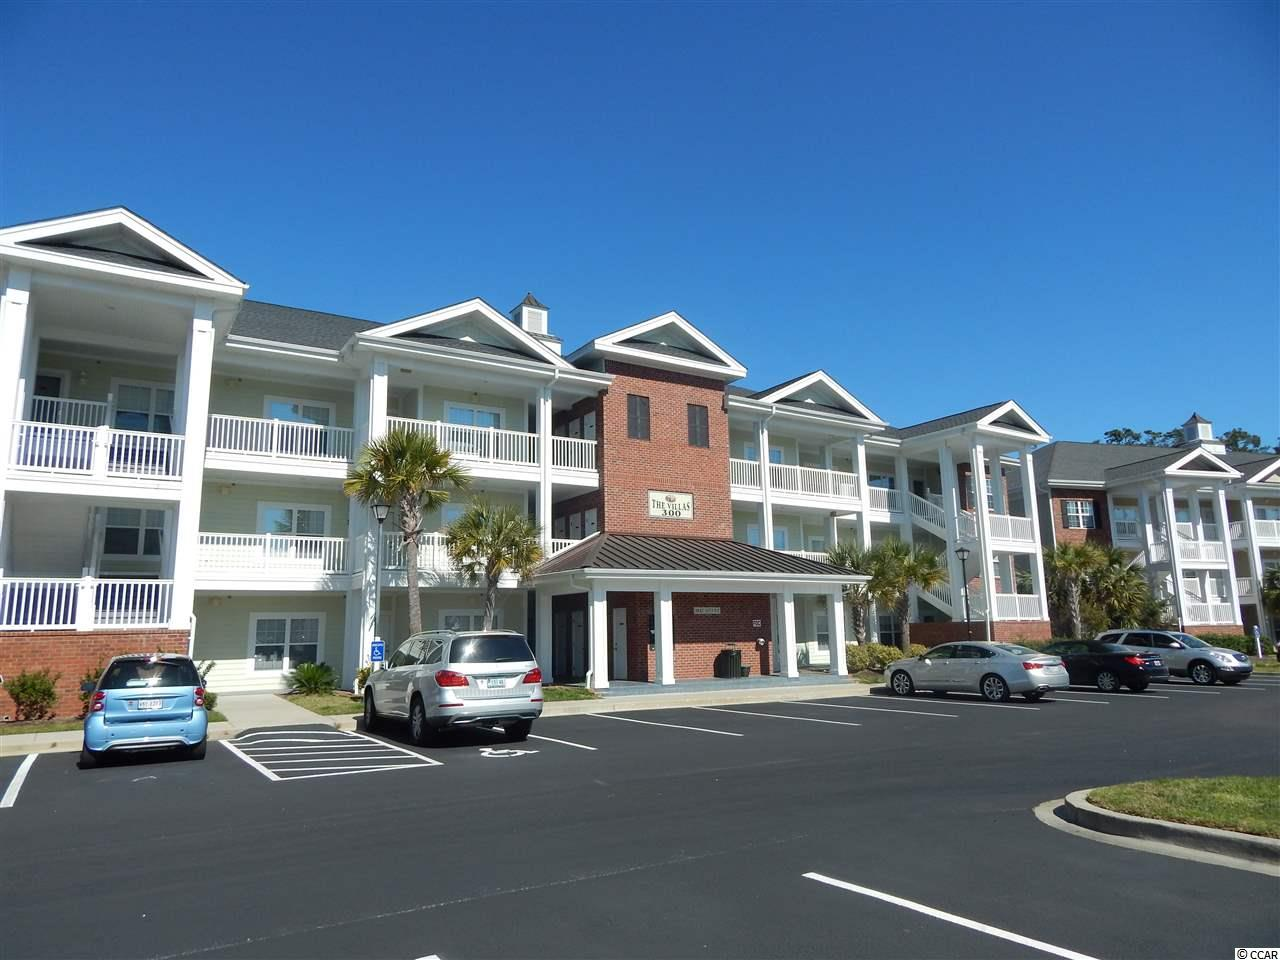 Condos For Sale Tupelo Bay Garden City Murrells Inlet Tupelo Bay Garden City Murrells Inlet